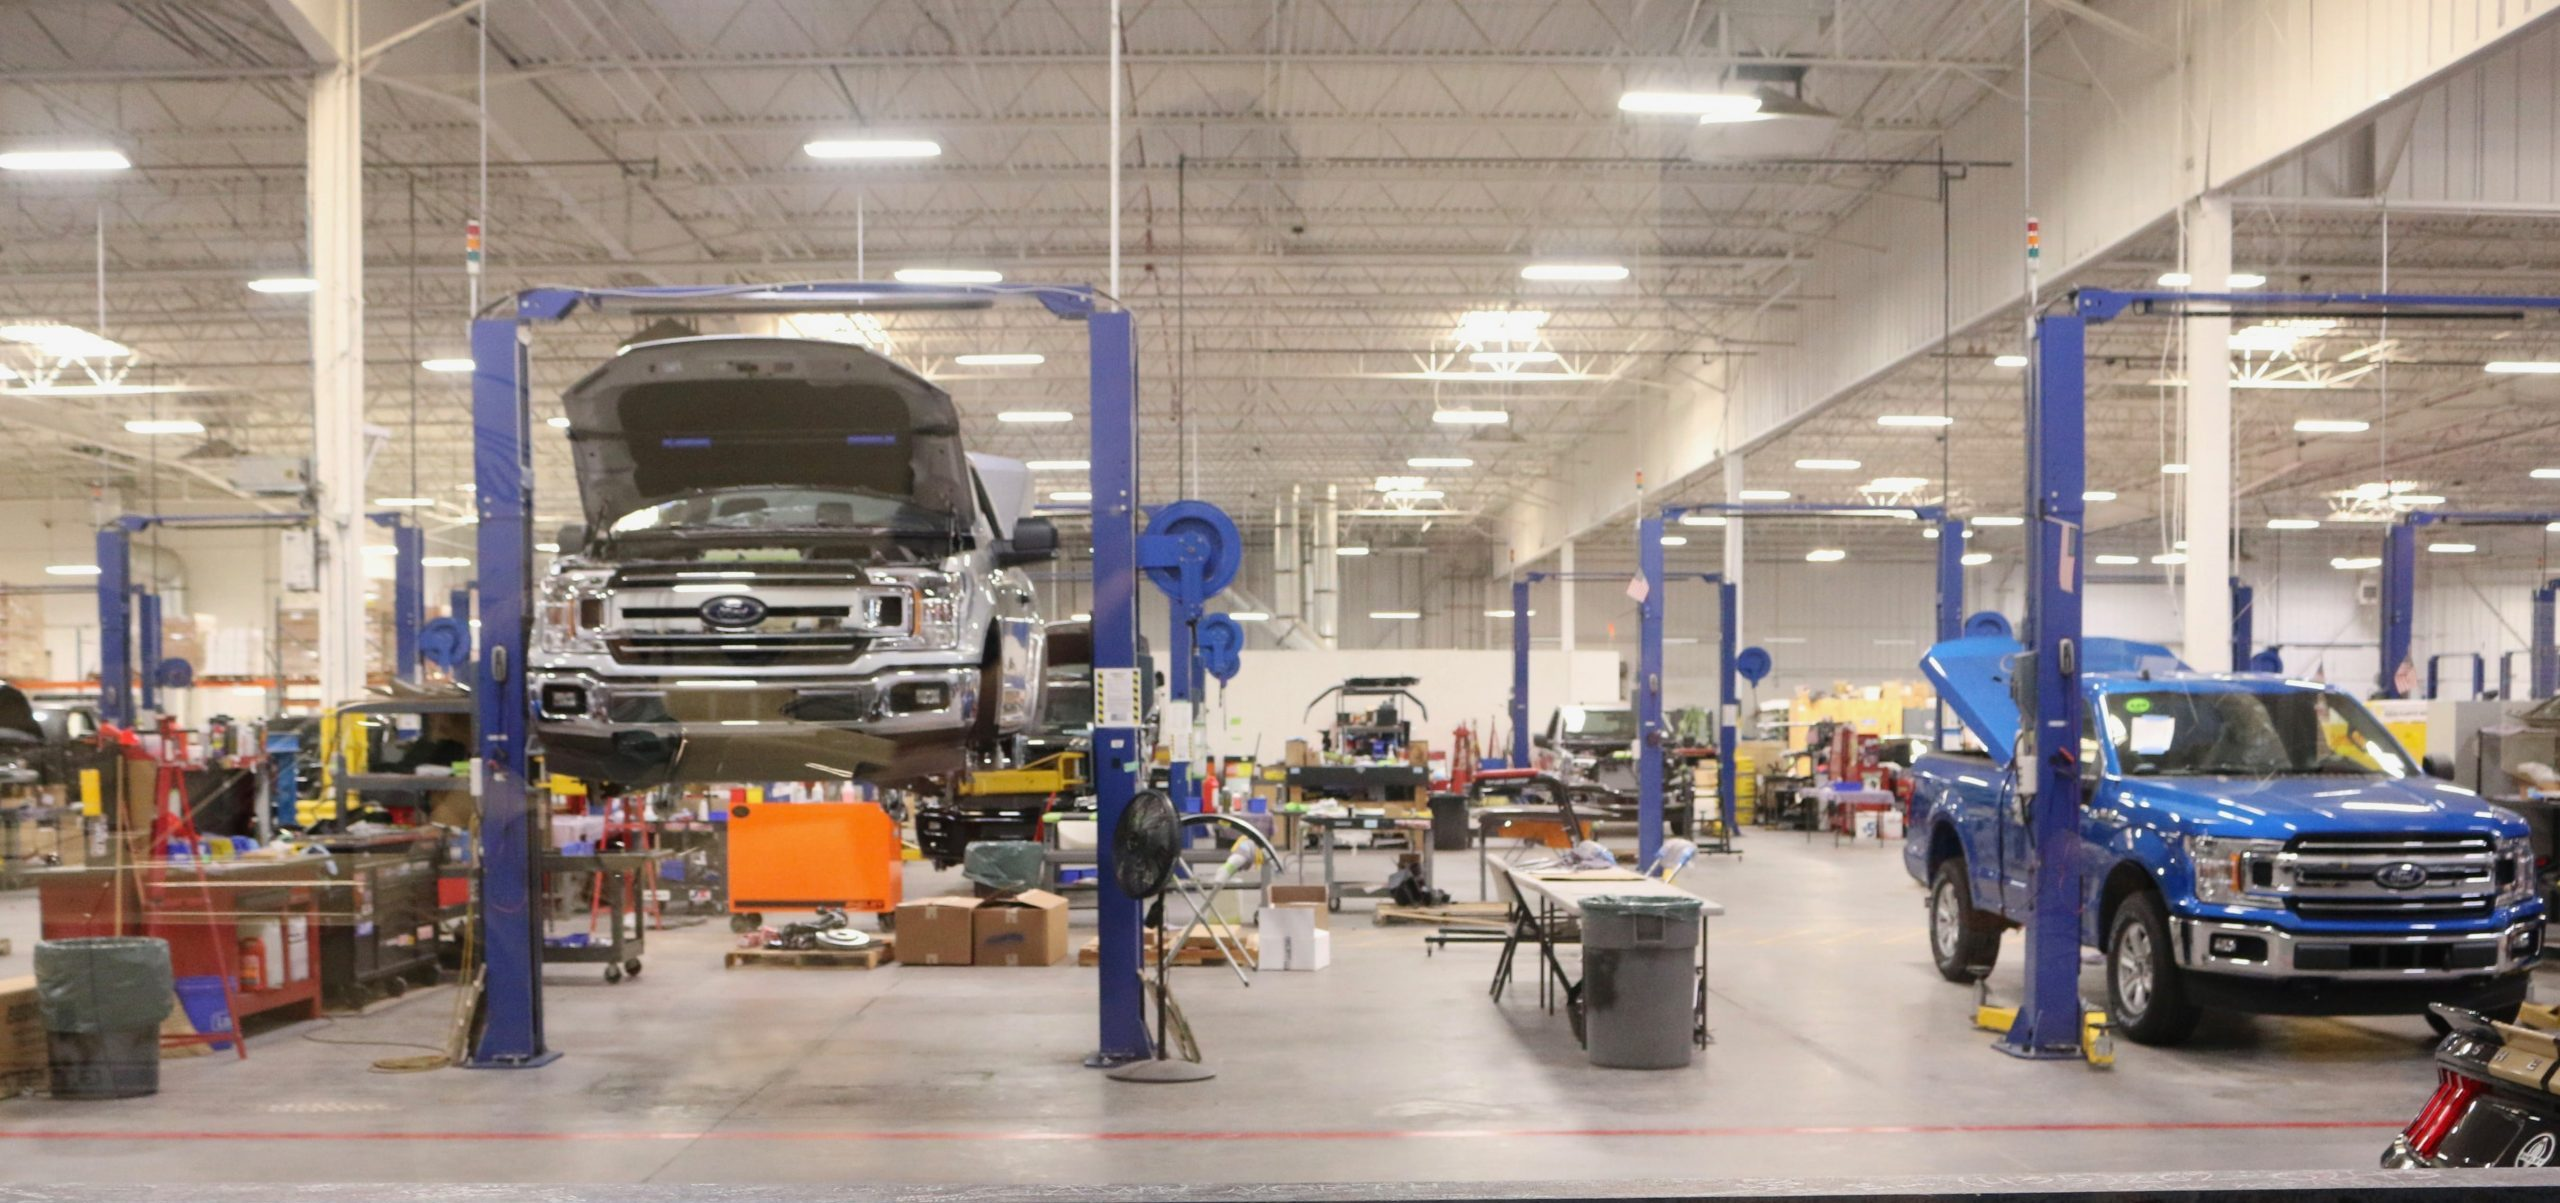 Cars in shop getting repaired